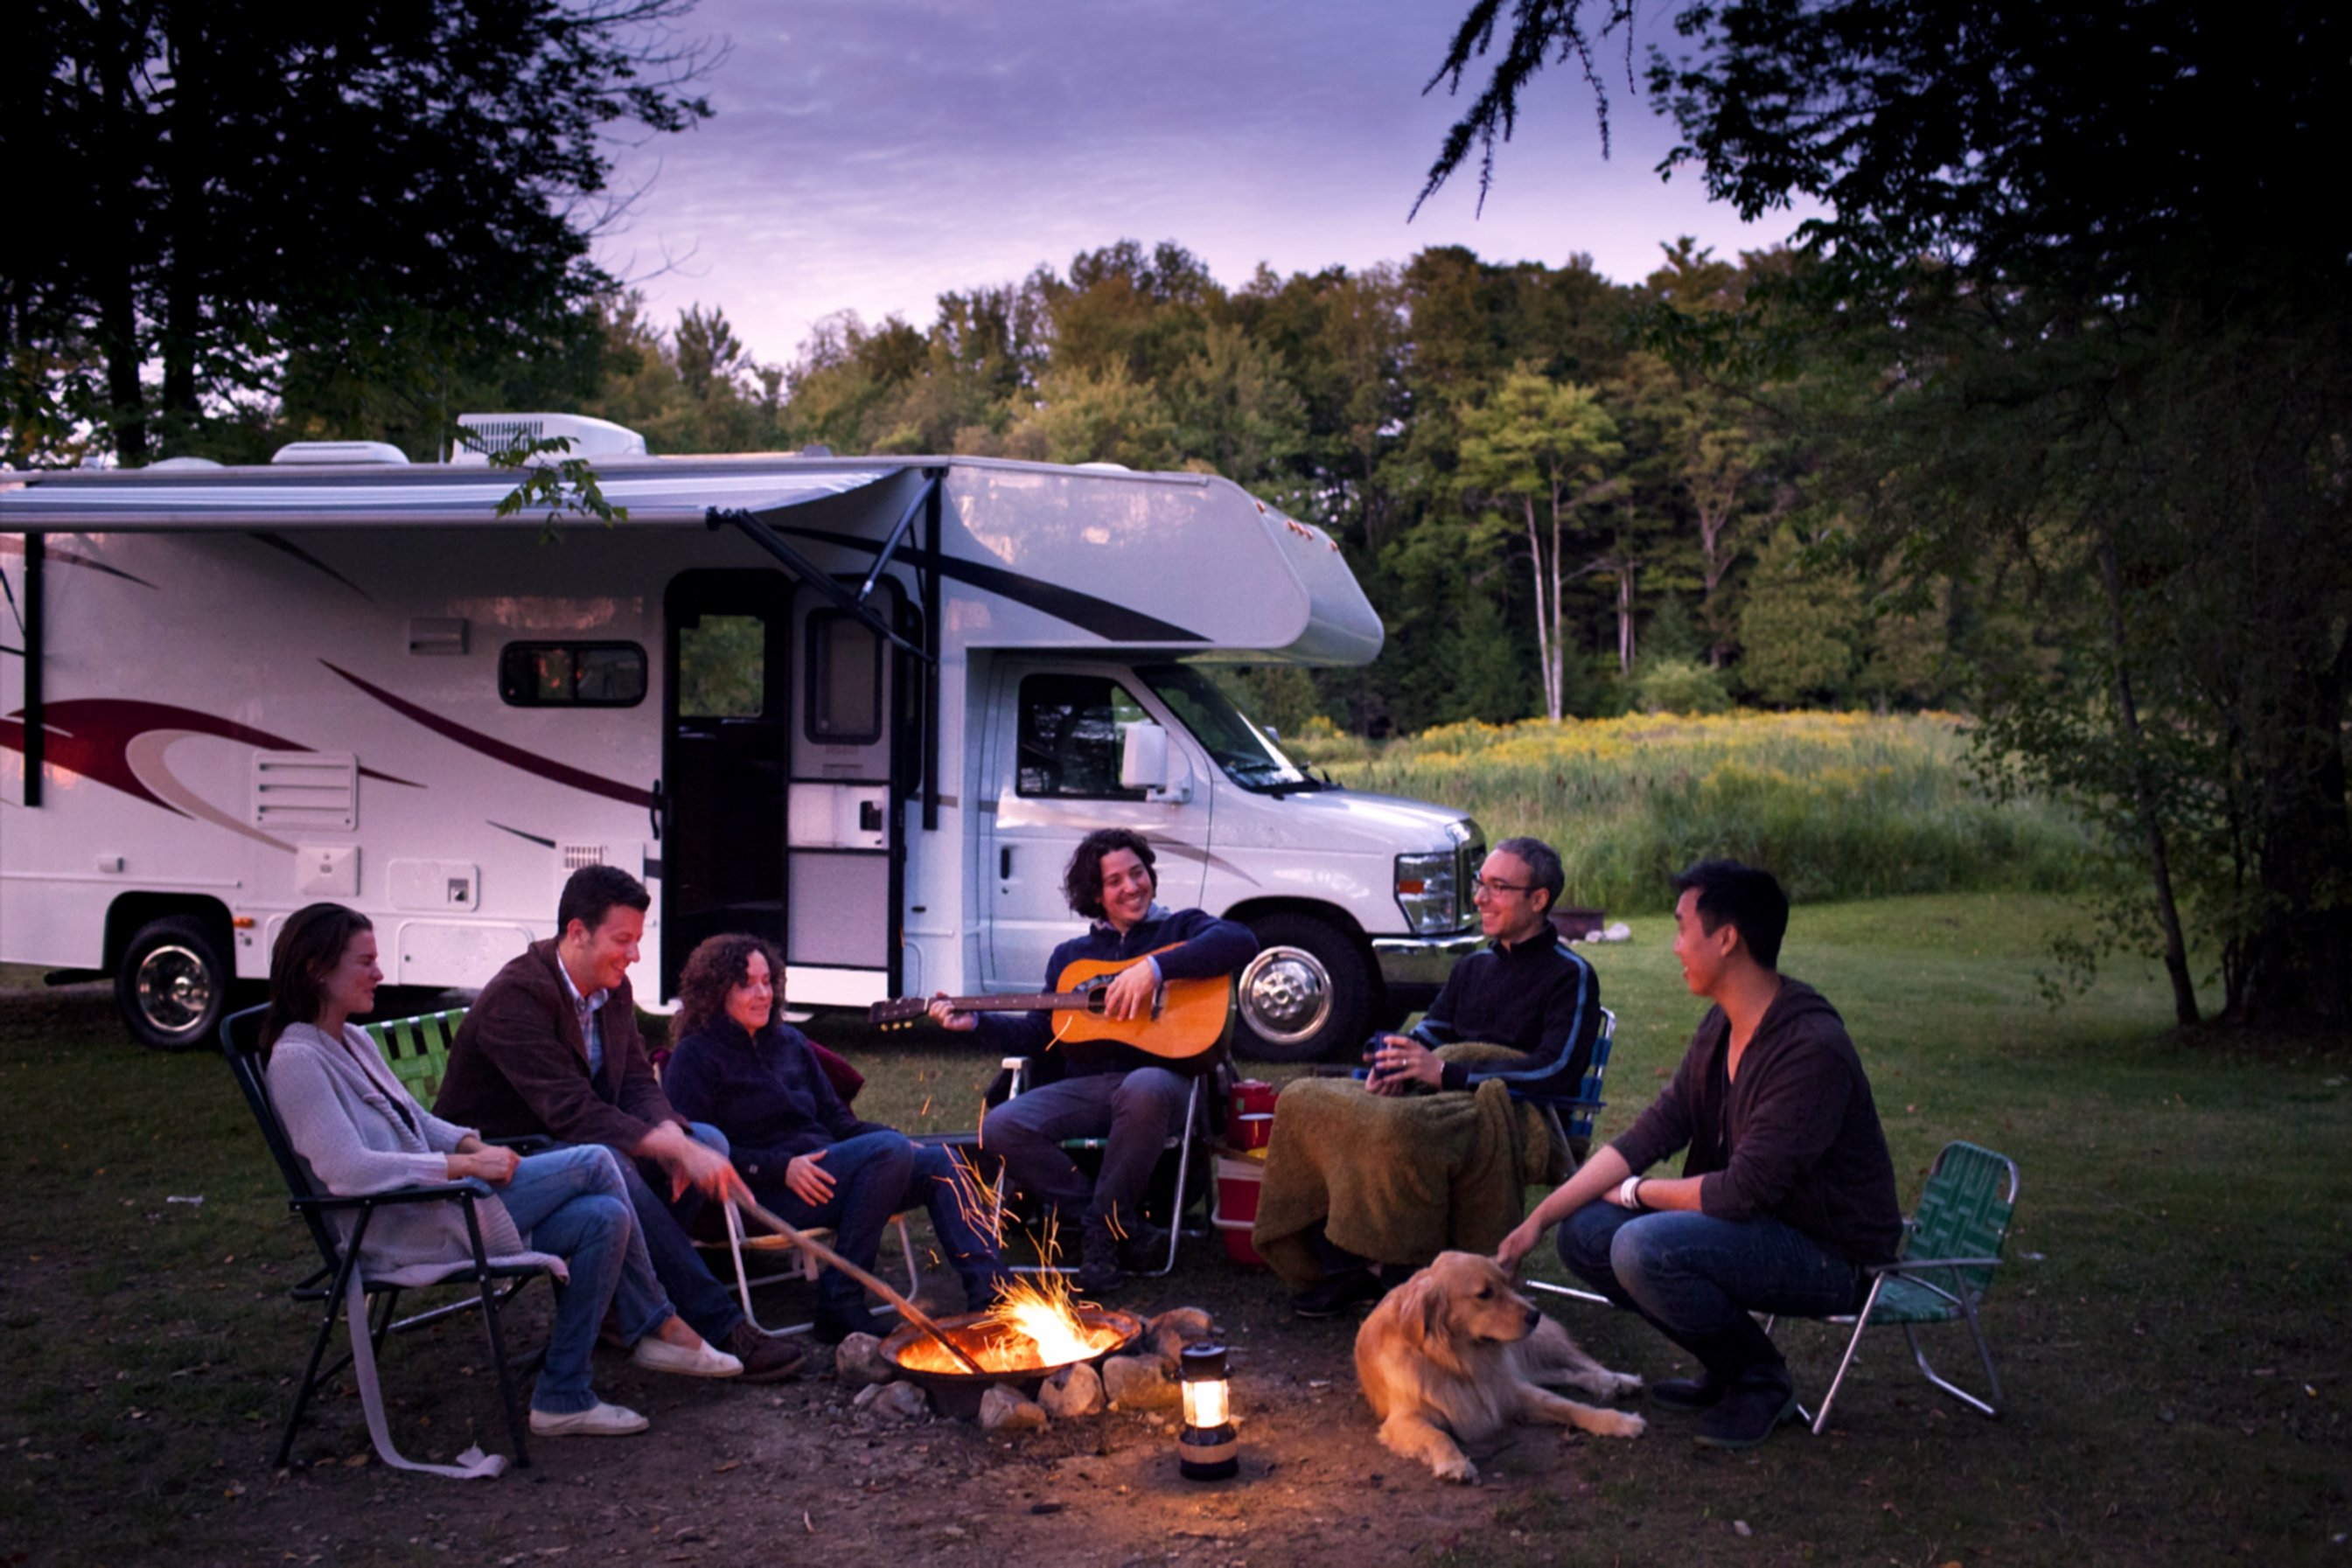 Group Of People Eating By The C fire On The Beach At The Gibb River Road as well Mercedes Sprinter Stealth Van C er as well Il Xn Vr moreover Cultus Lake Sm together with Fc Cdffd F Fc A Travel Trailer Storage Rv Storage. on campfire travel trailer camper